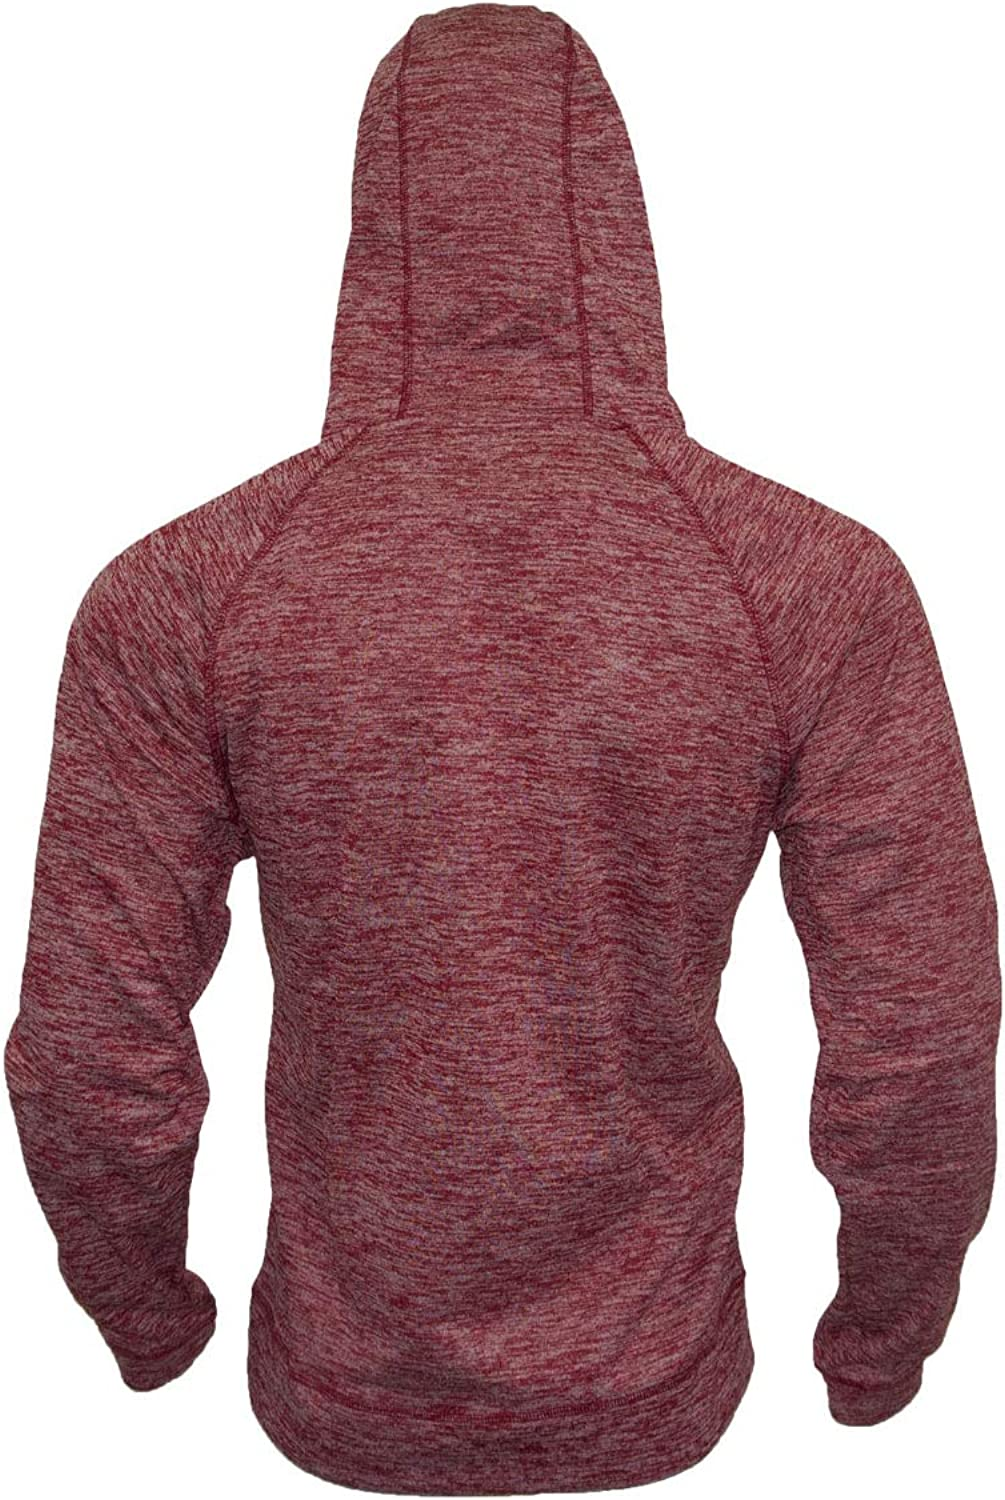 Le G Fleece Outerwear Hoodies Sweater with Second Pocket Zipper